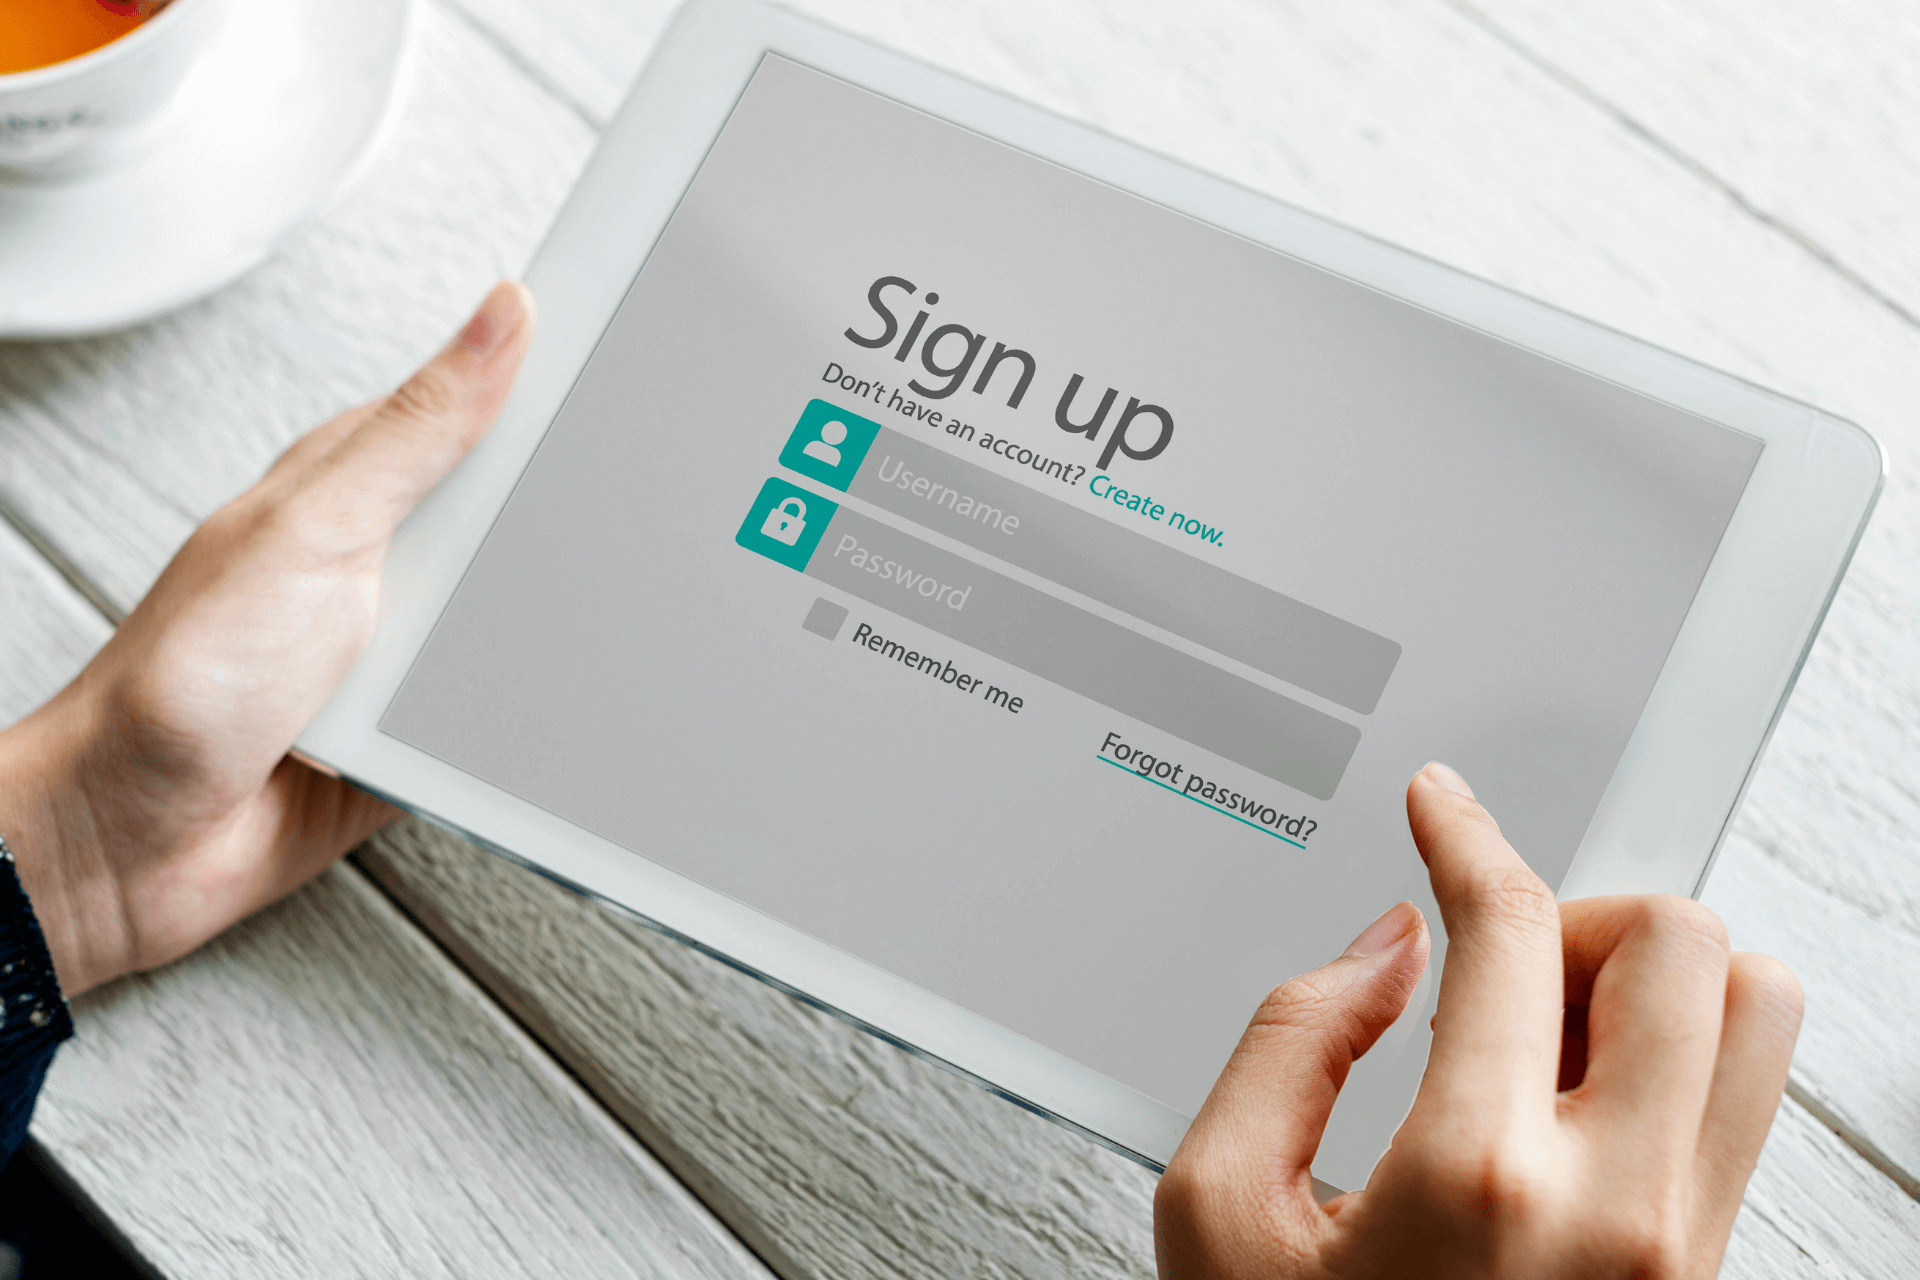 This image shows a sign up screen for a nonprofit membership program